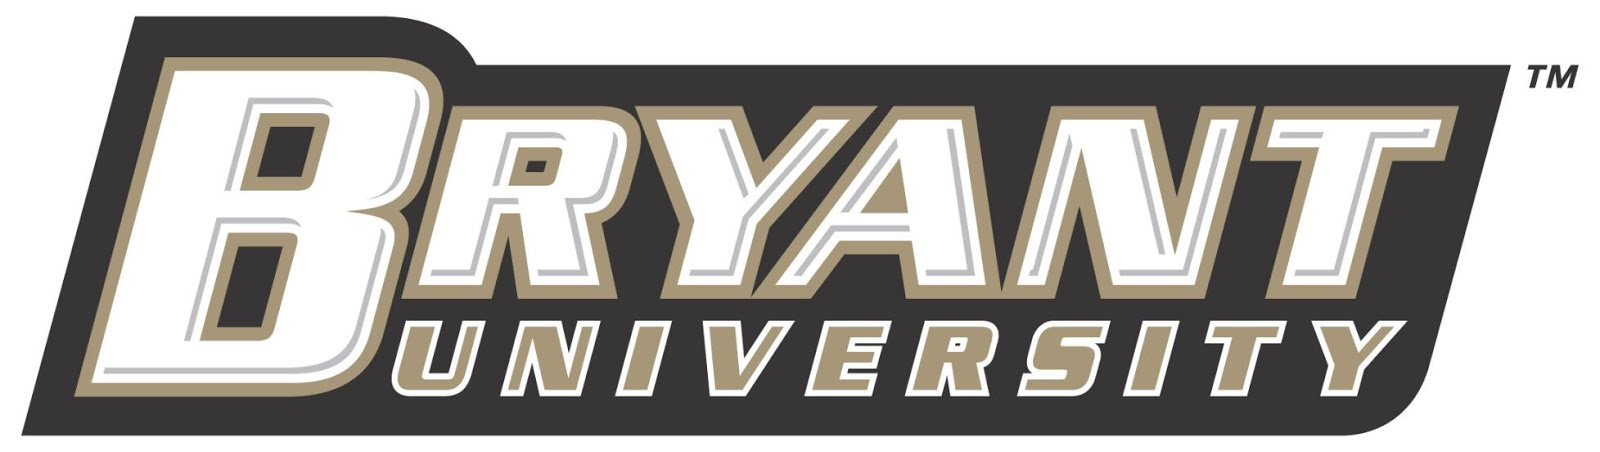 http://www.bryantbulldogs.com/downloads/Bryant_Wordmark-full.jpg